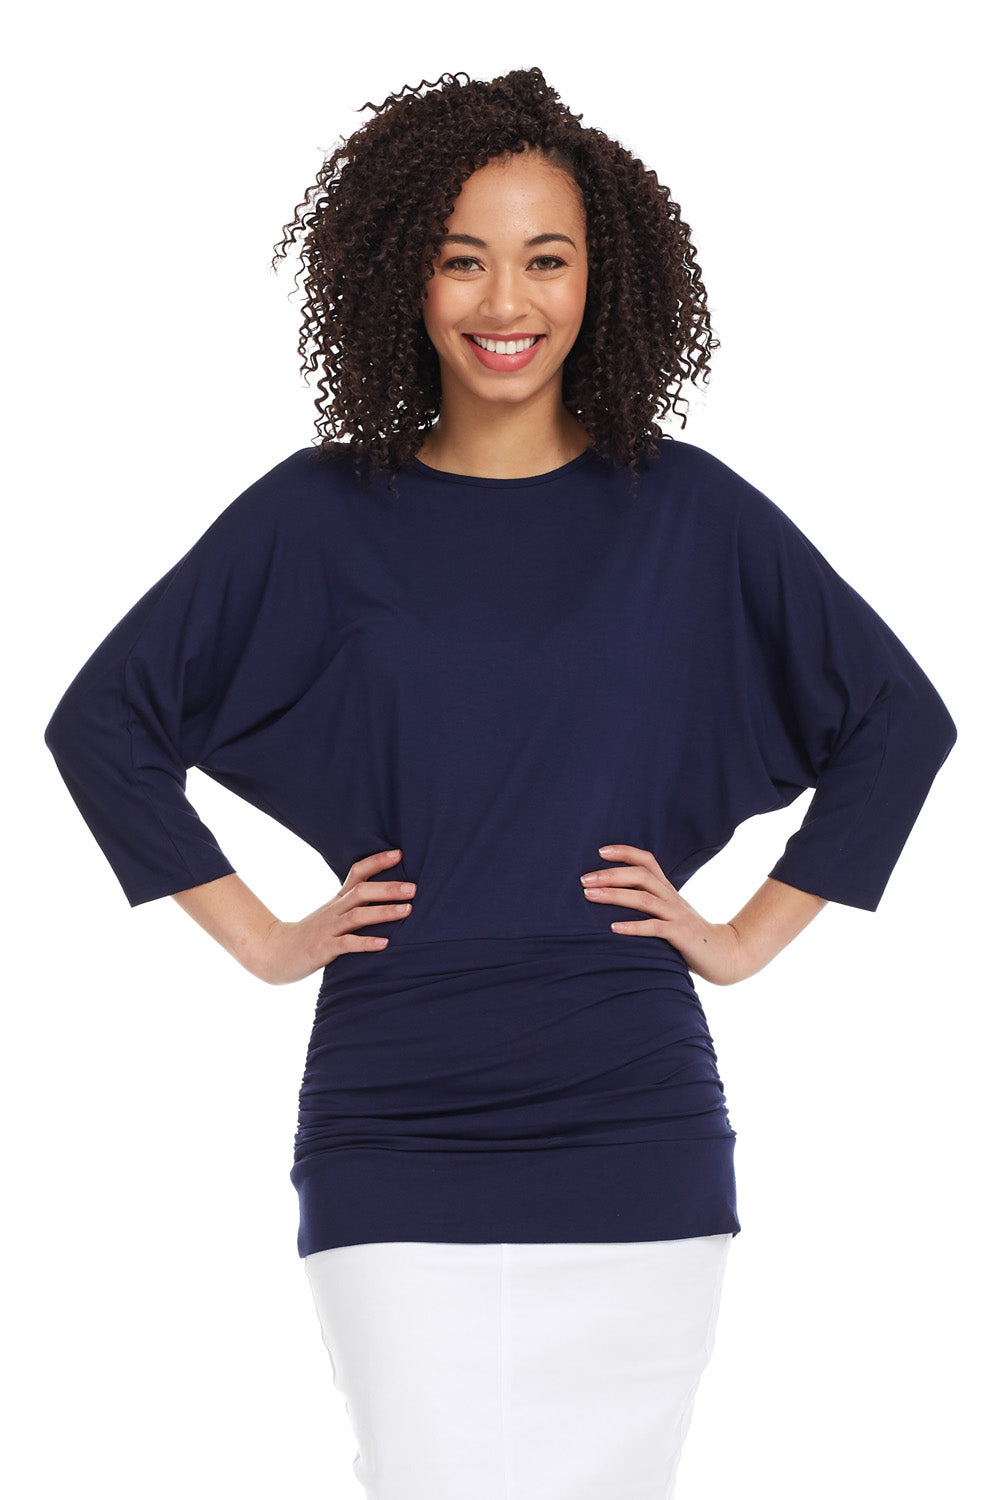 Esteez DAHLIA top - Womens 3/4 Sleeve Tummy Tuck Top - NAVY